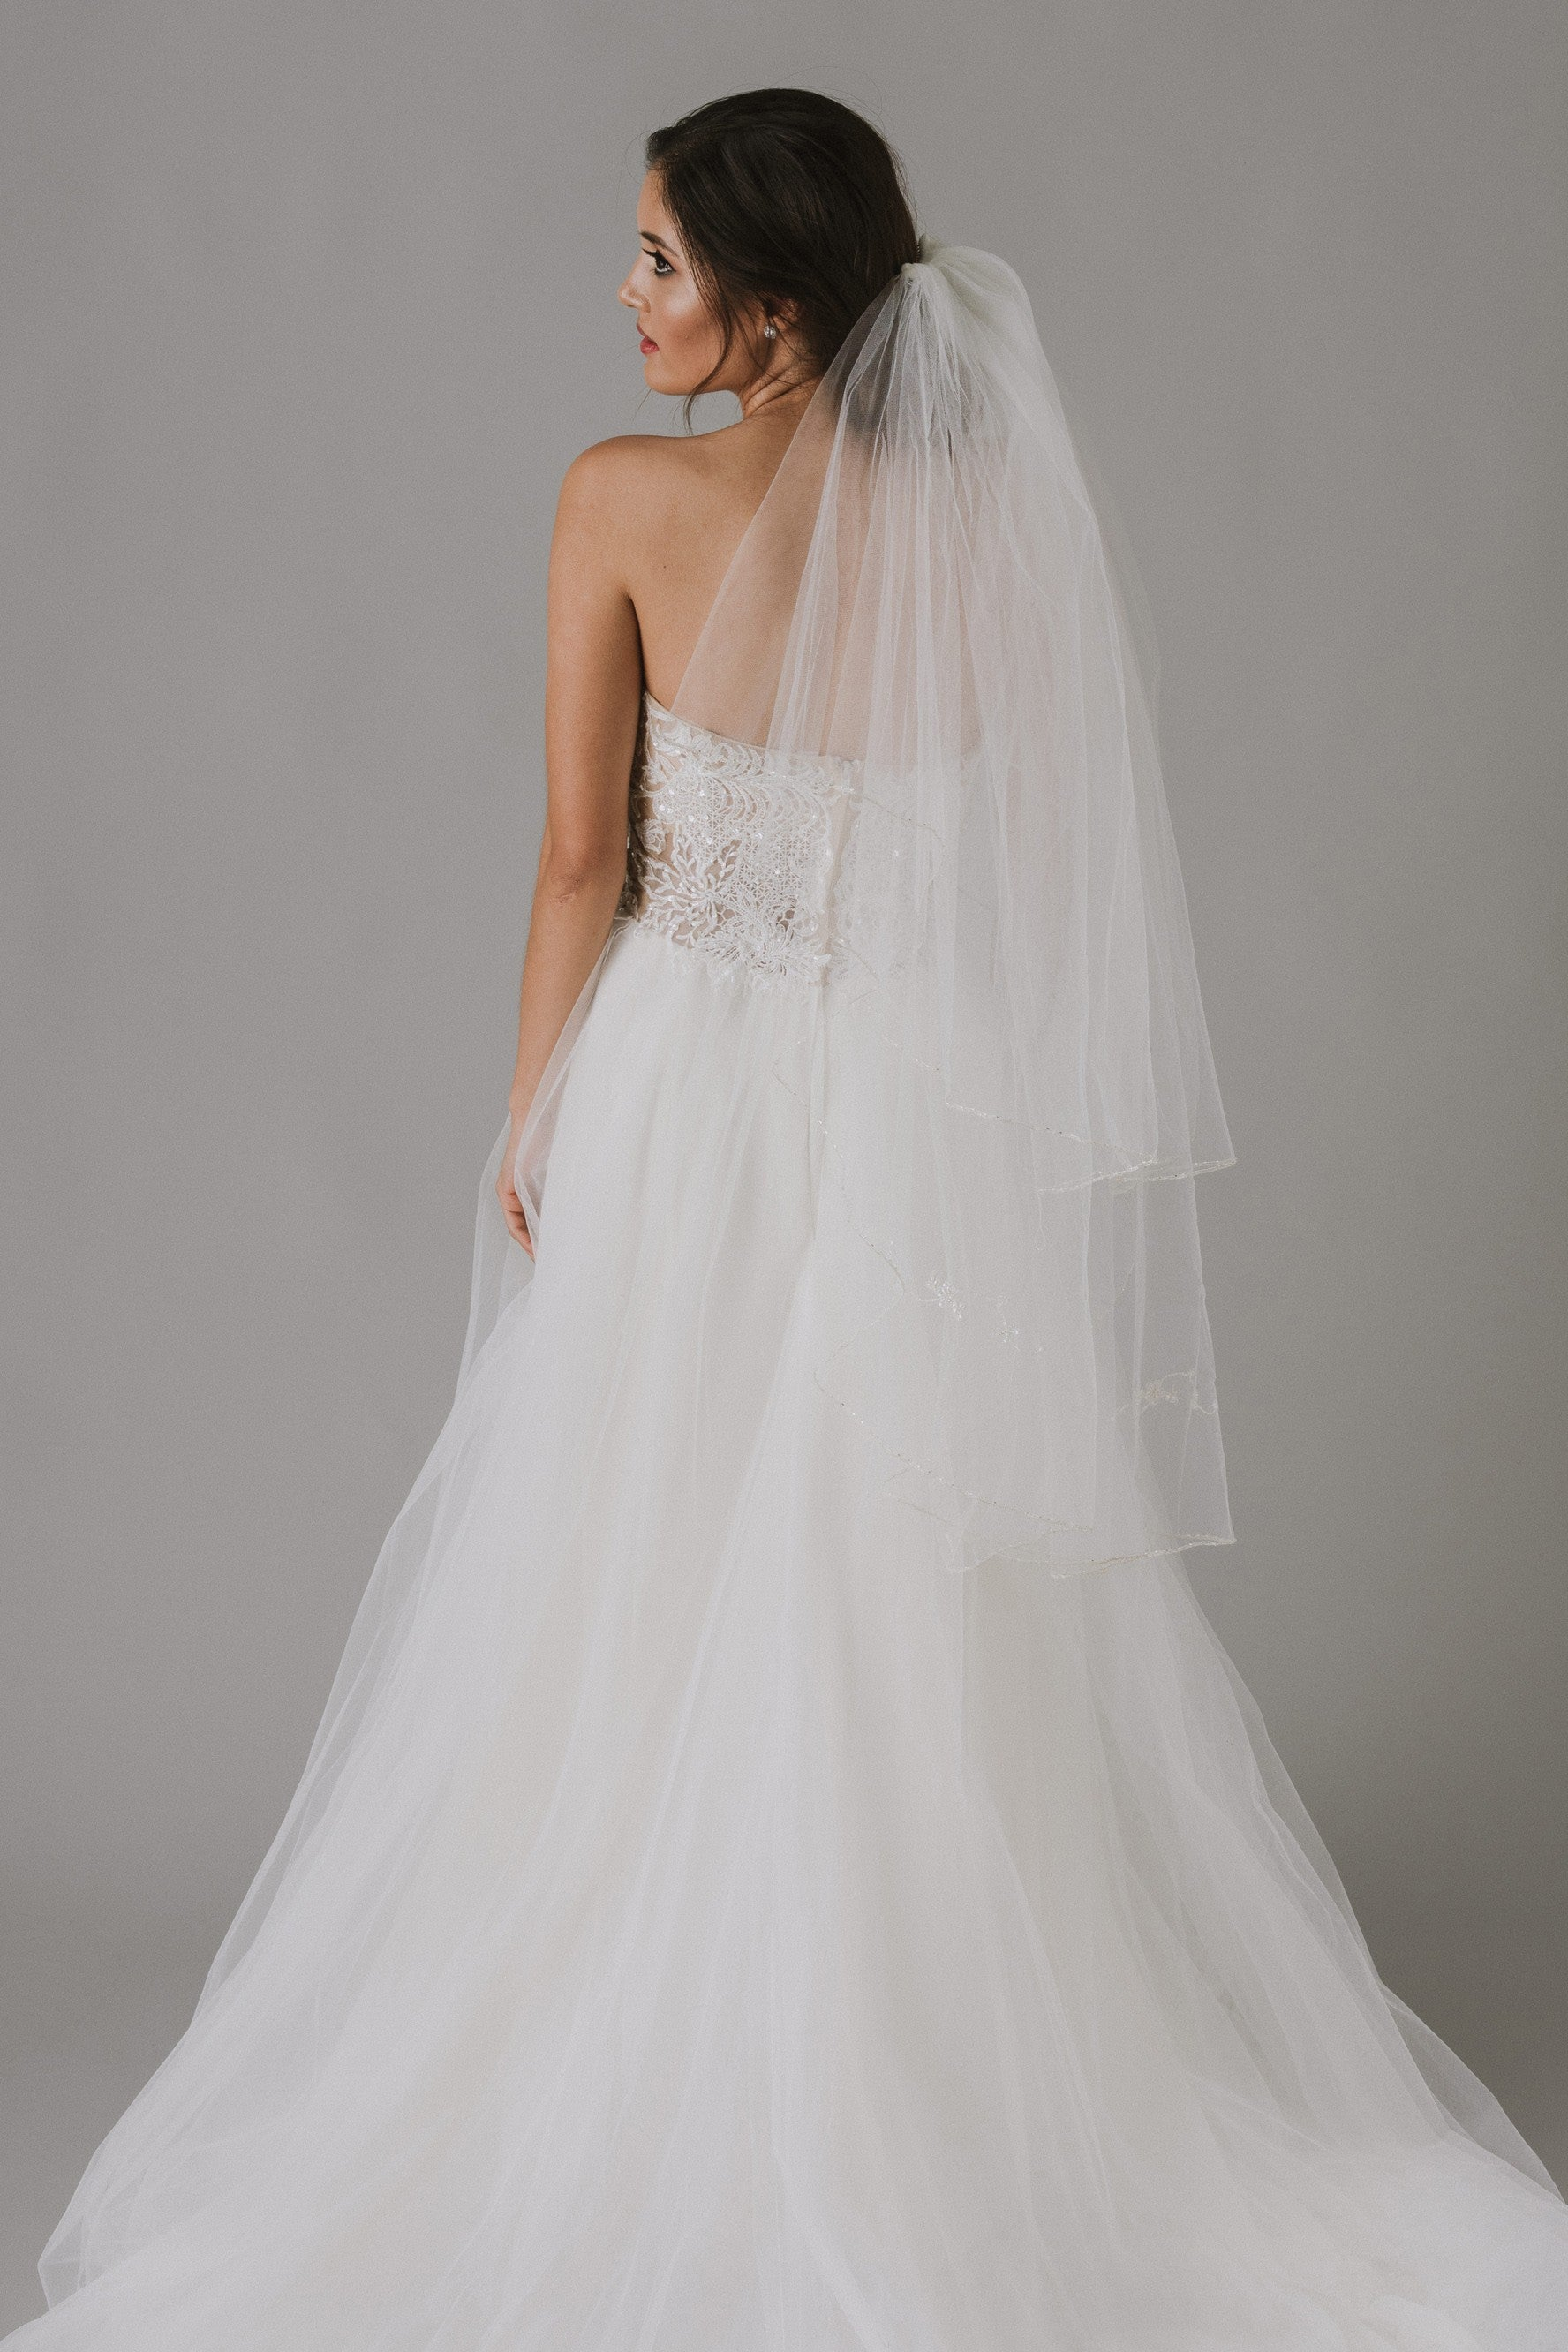 Two Tiered Veil with Beaded Metallic Edging-VCT258S